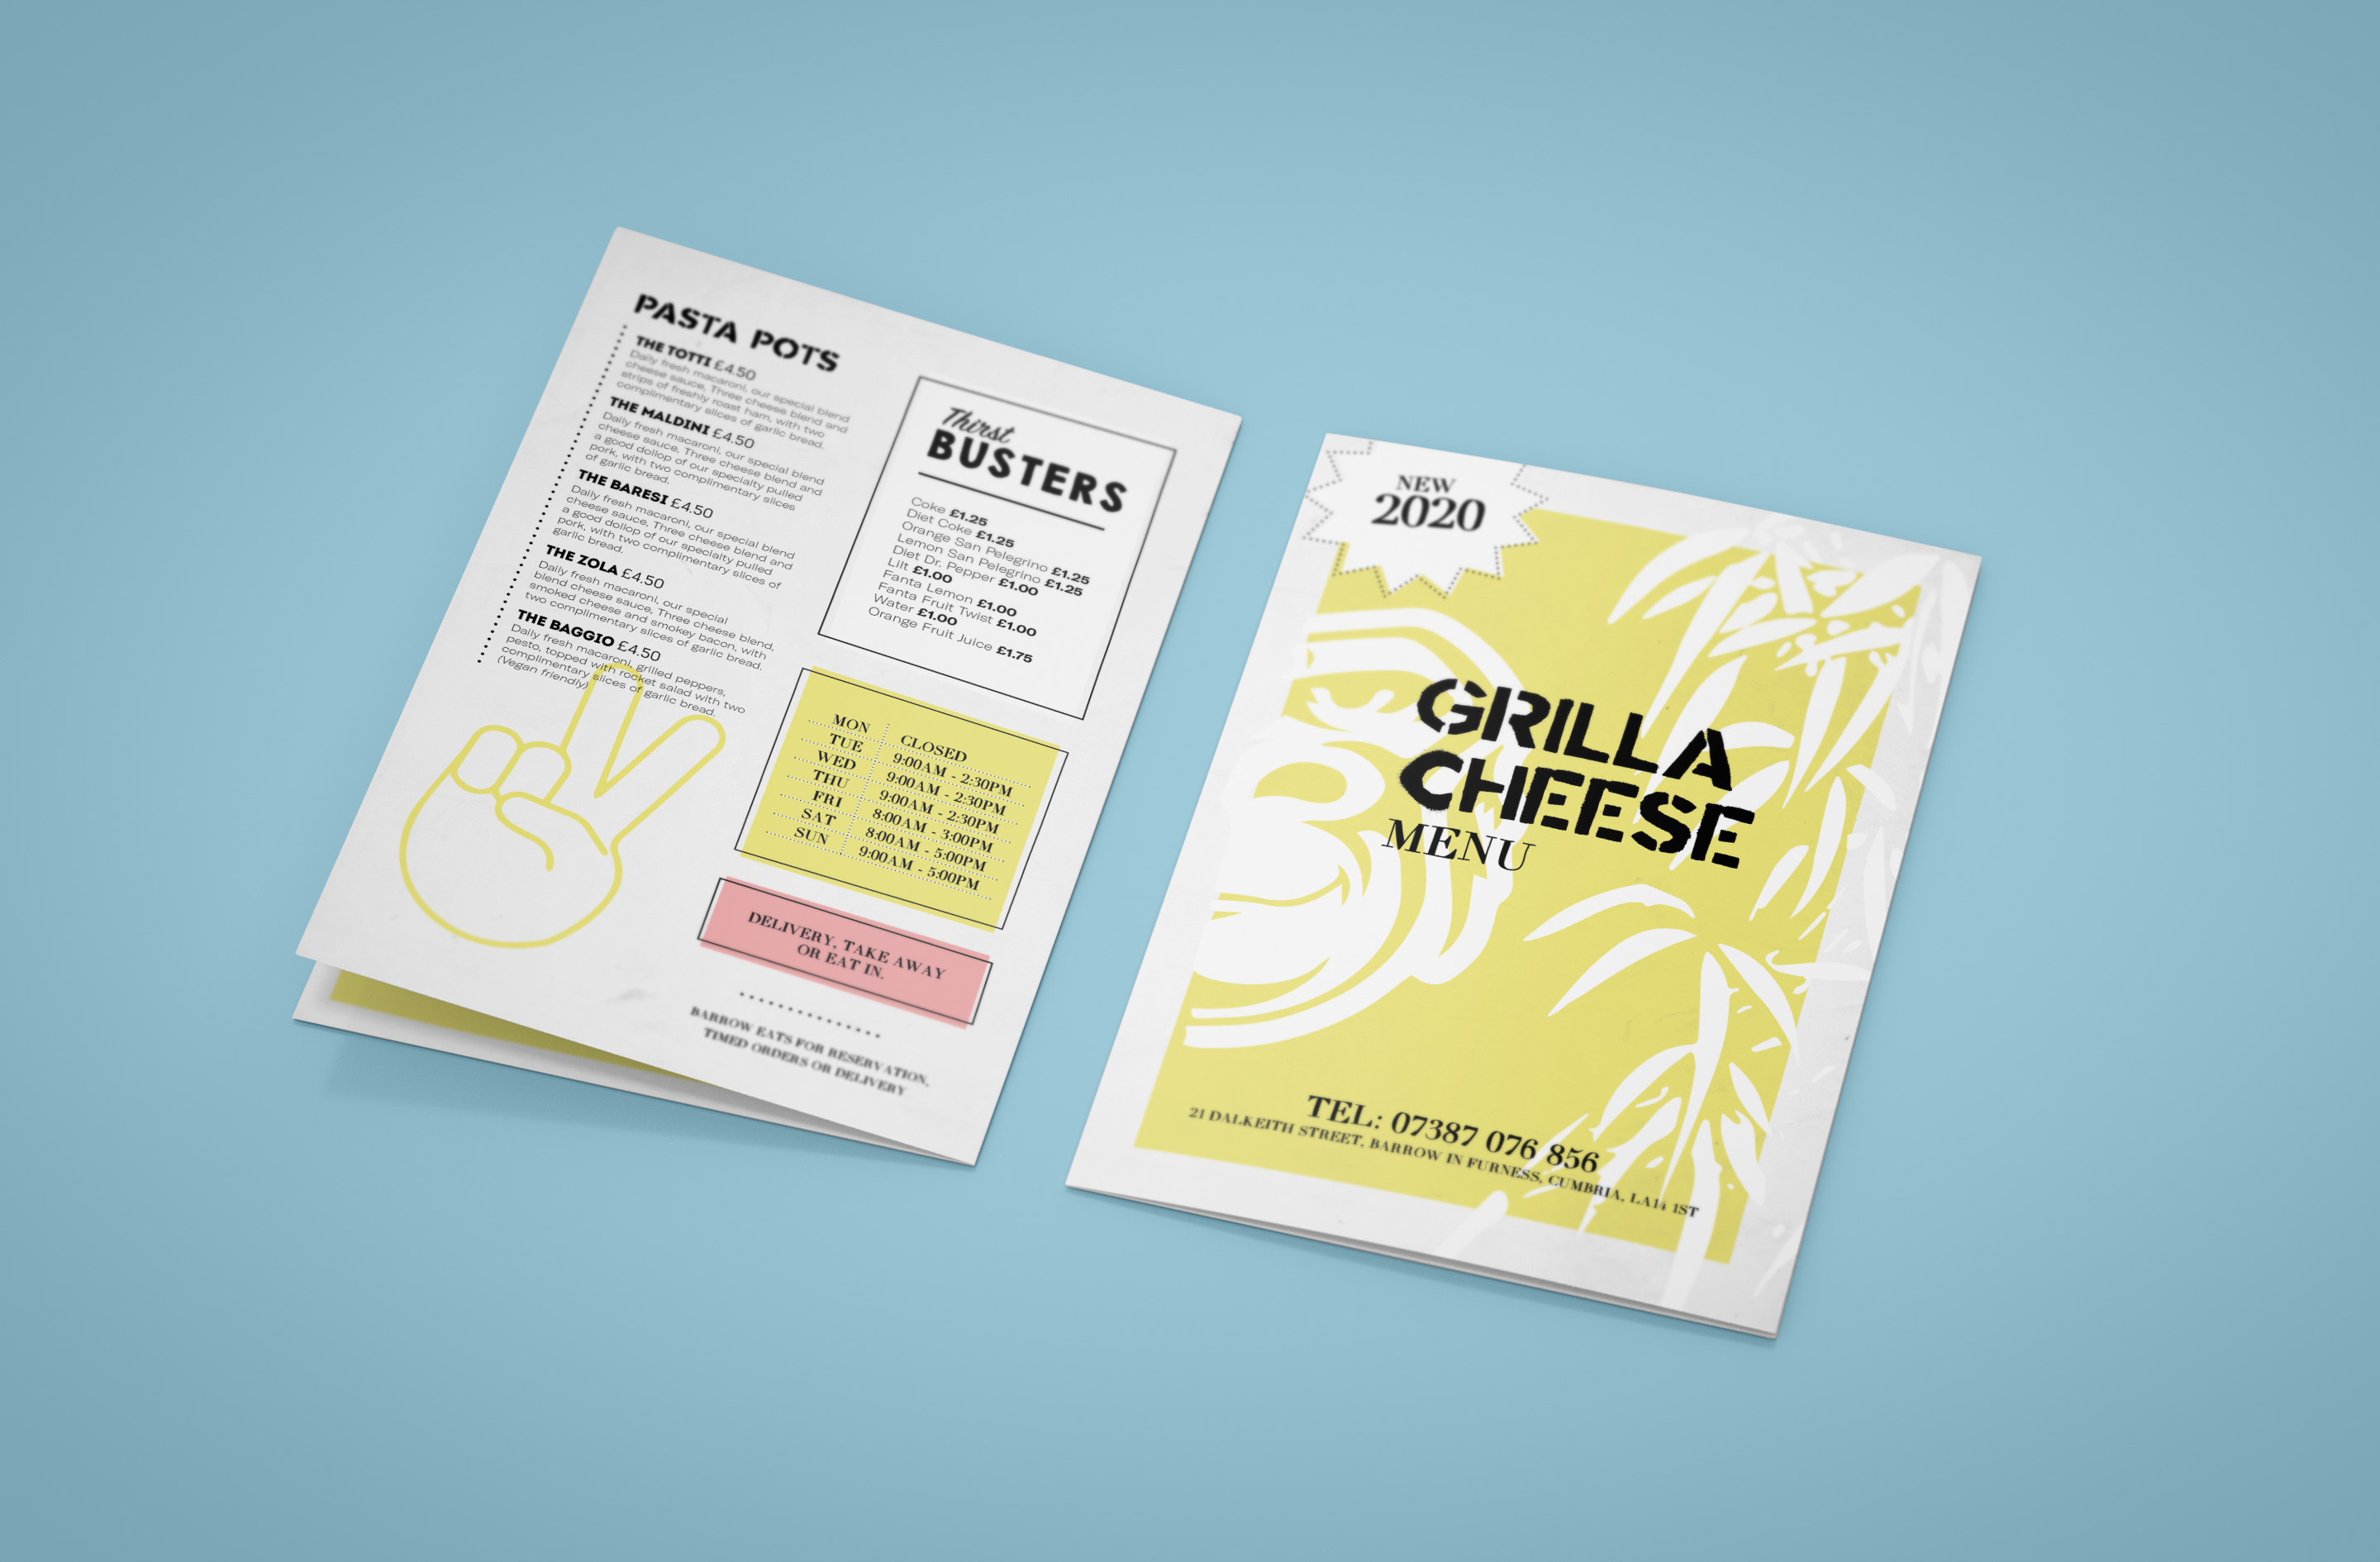 Grilla Cheese Menu